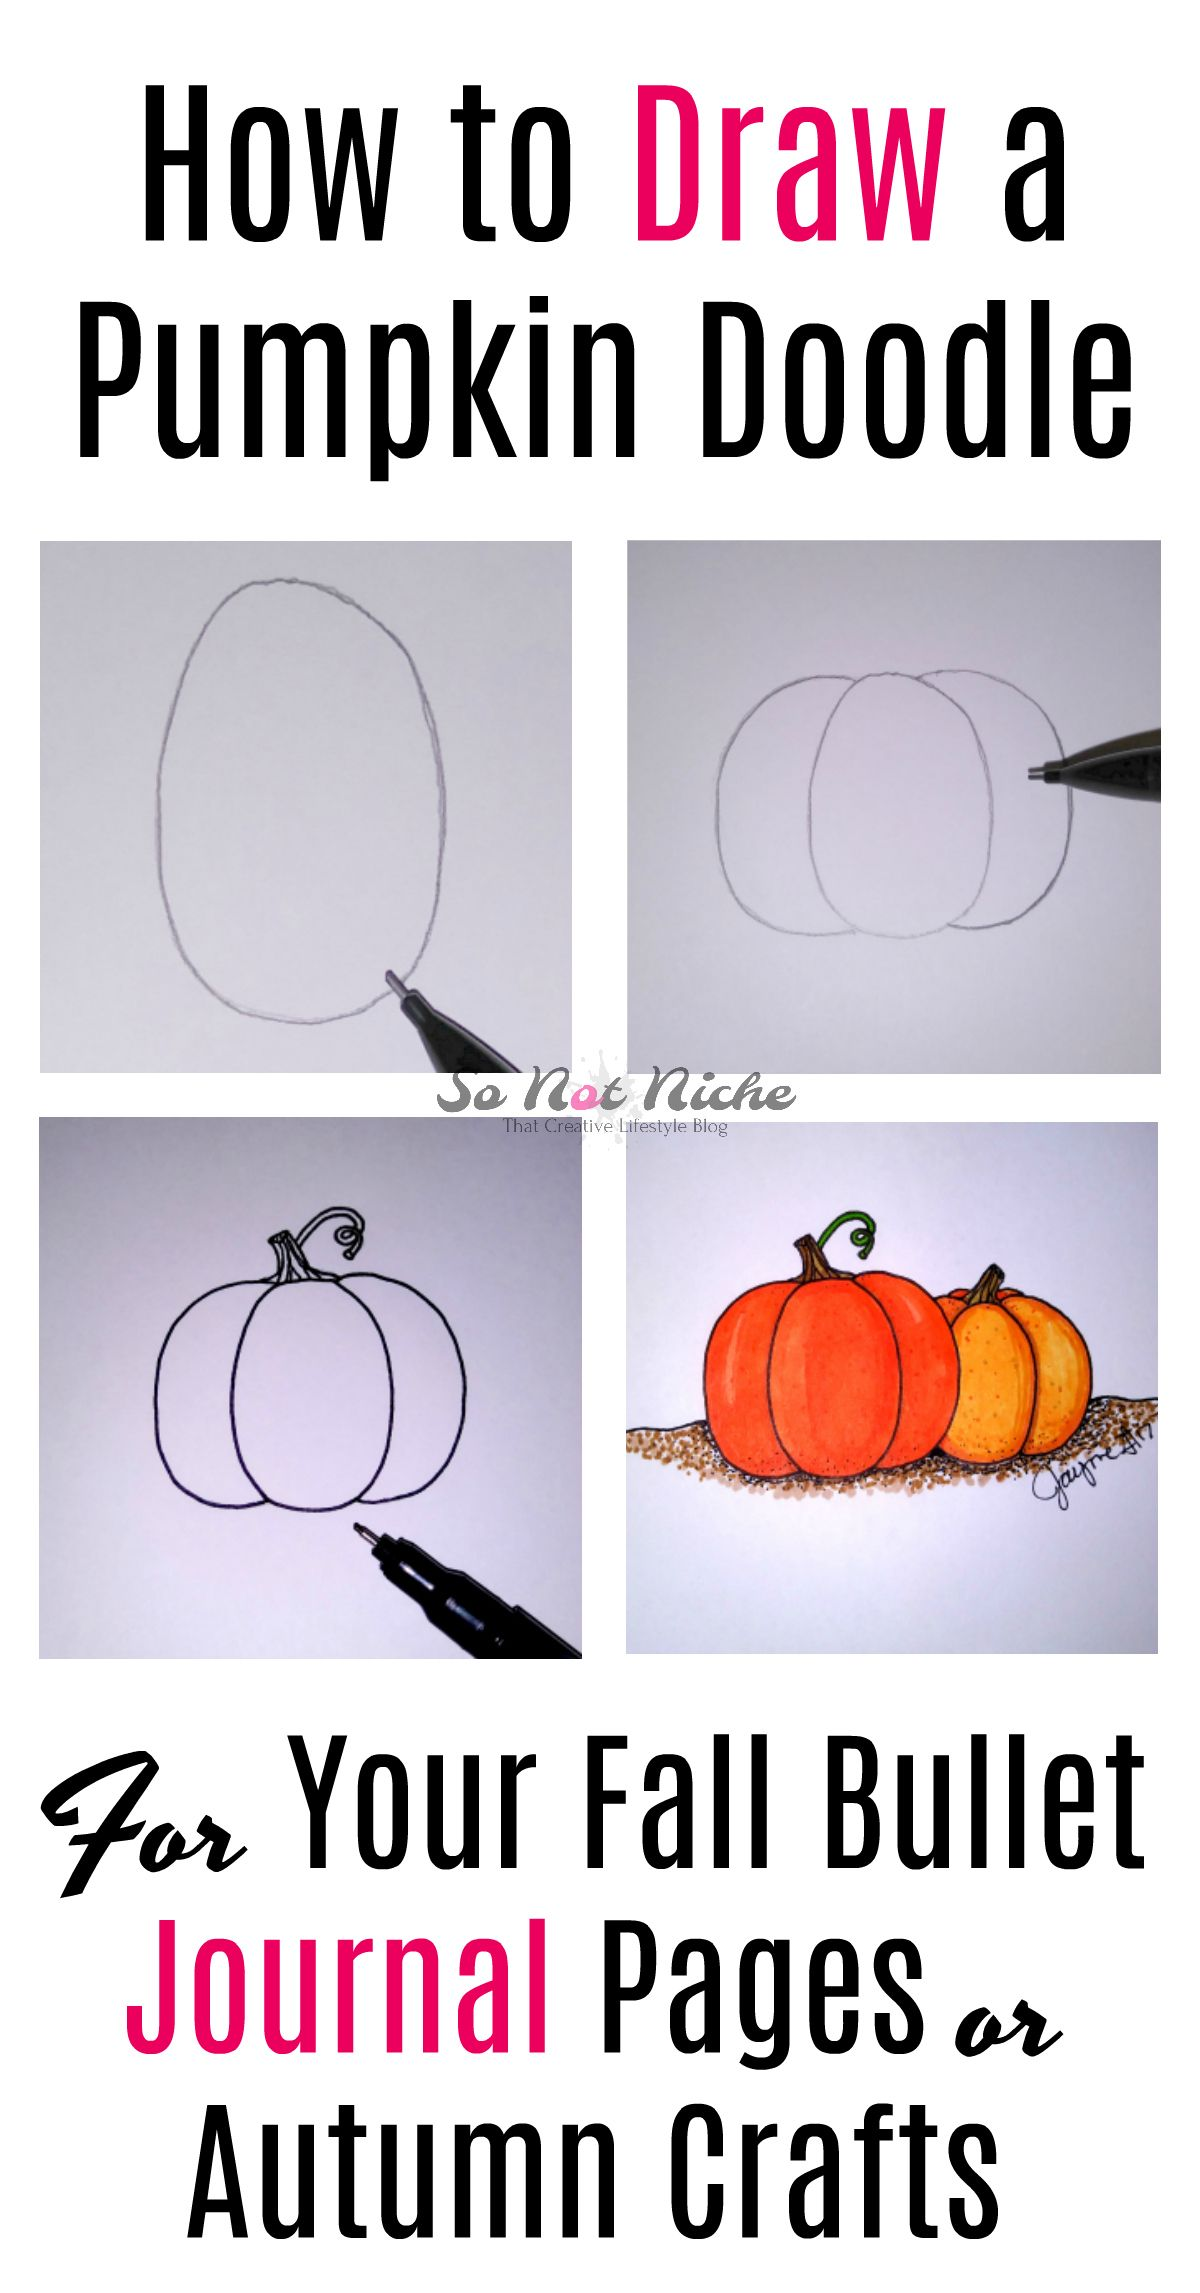 How to draw a cute pumpkin doodle for fall decor and